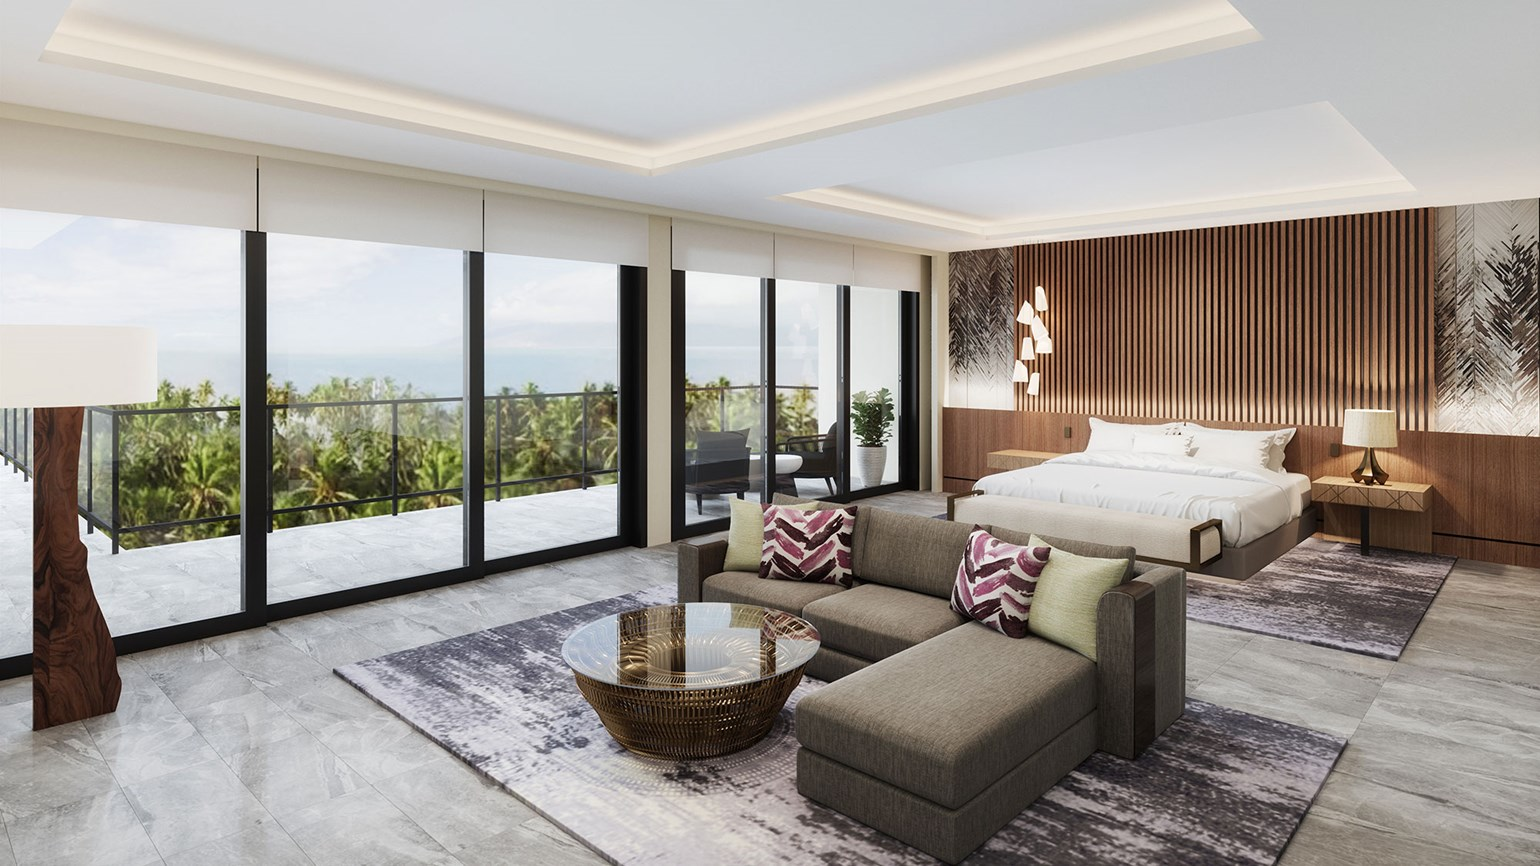 Andaz Maui expects its new Illikai Villas to be in high demand